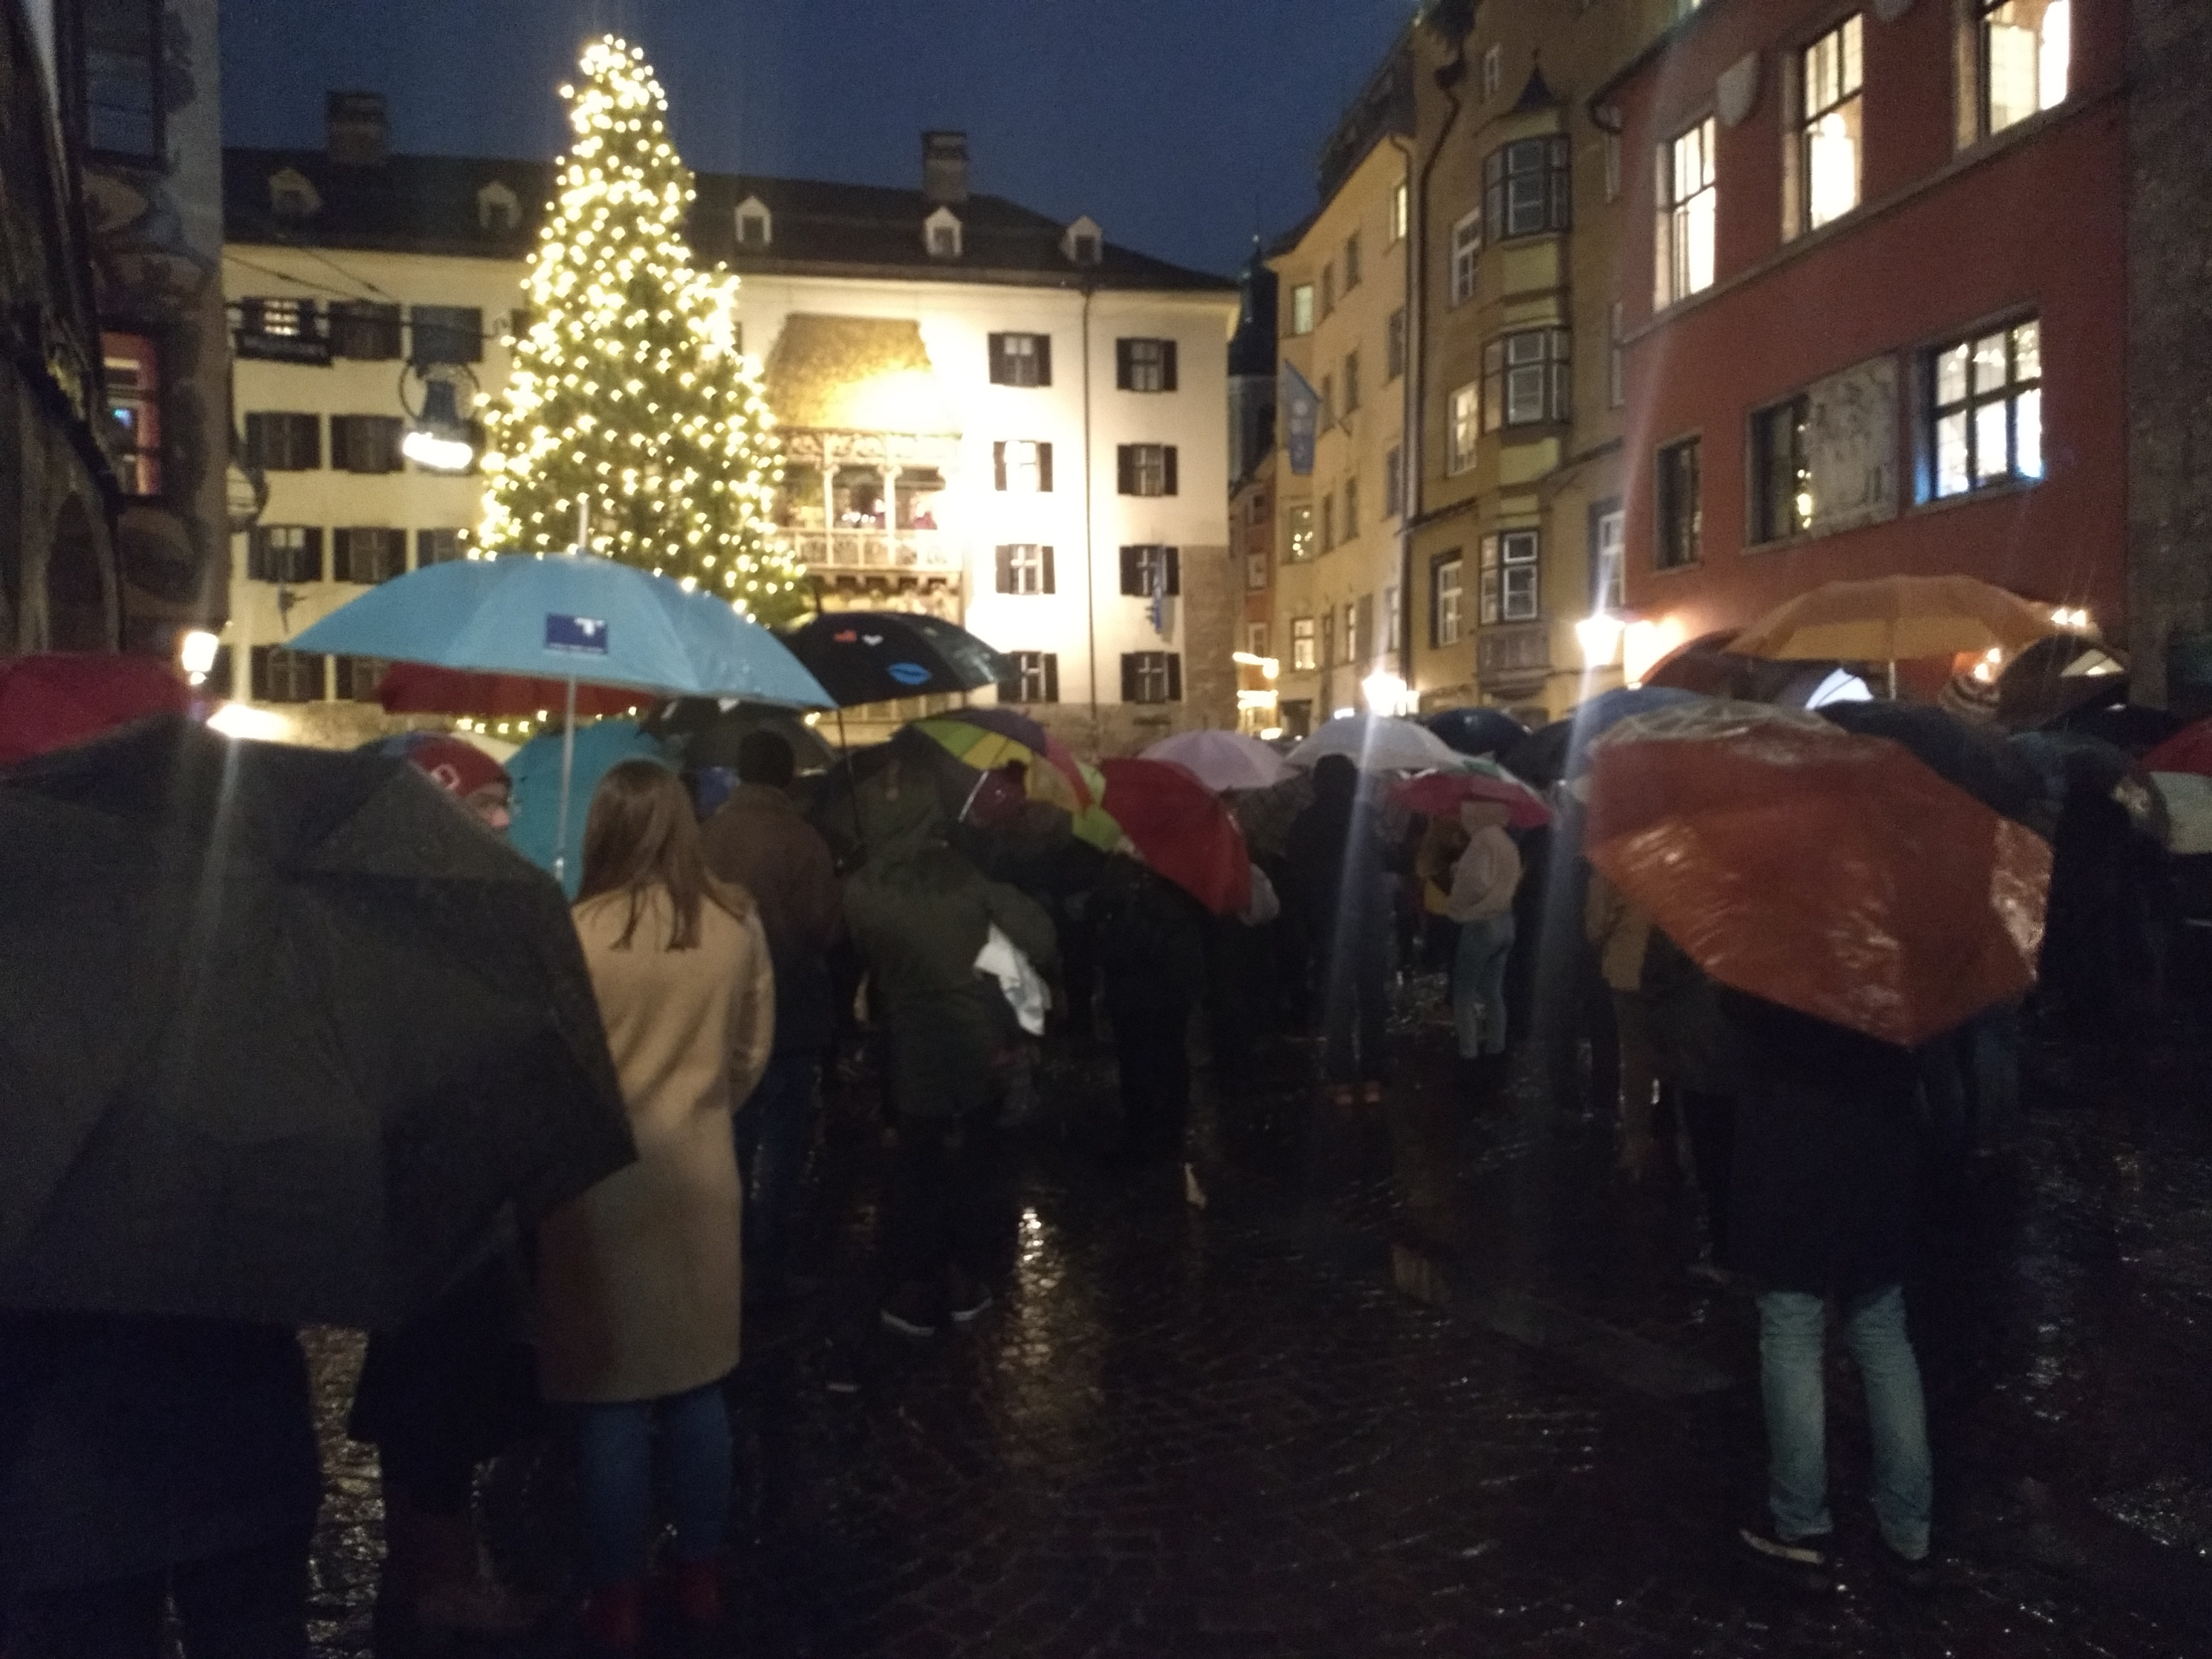 A crowd gathered in a rainy street in the medieval centre of Innsbruck